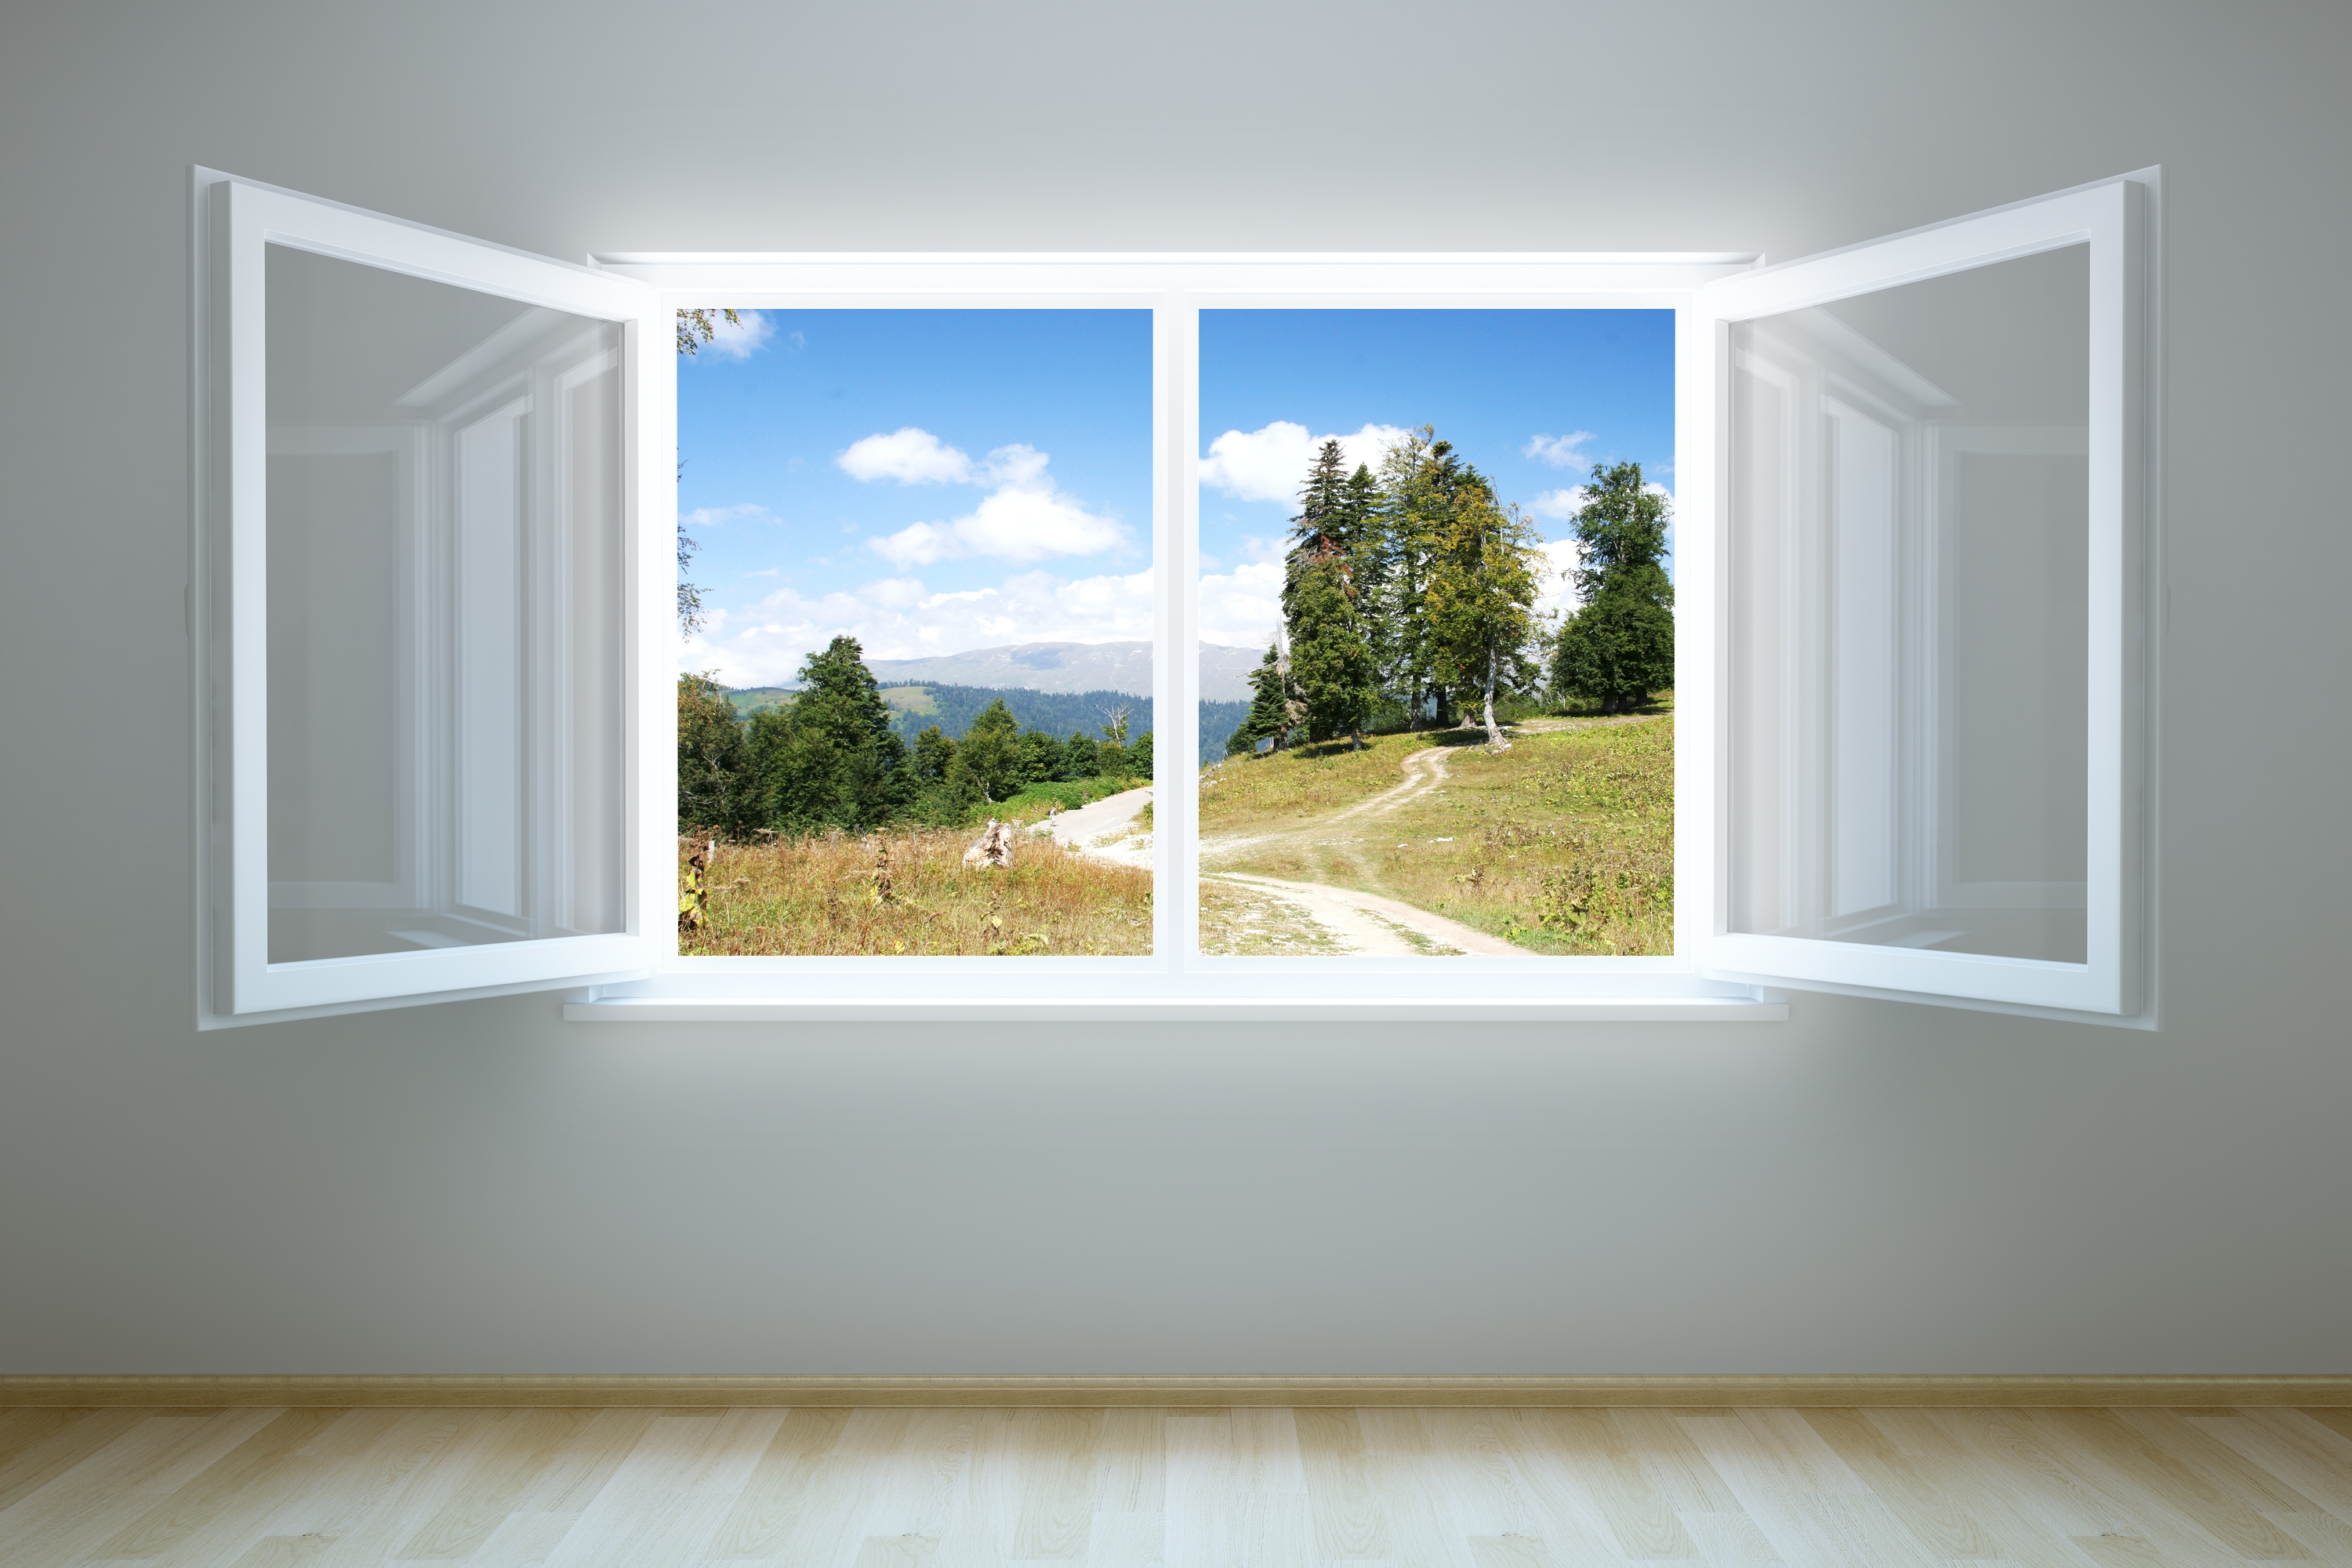 3d rendering of an empty room with open window